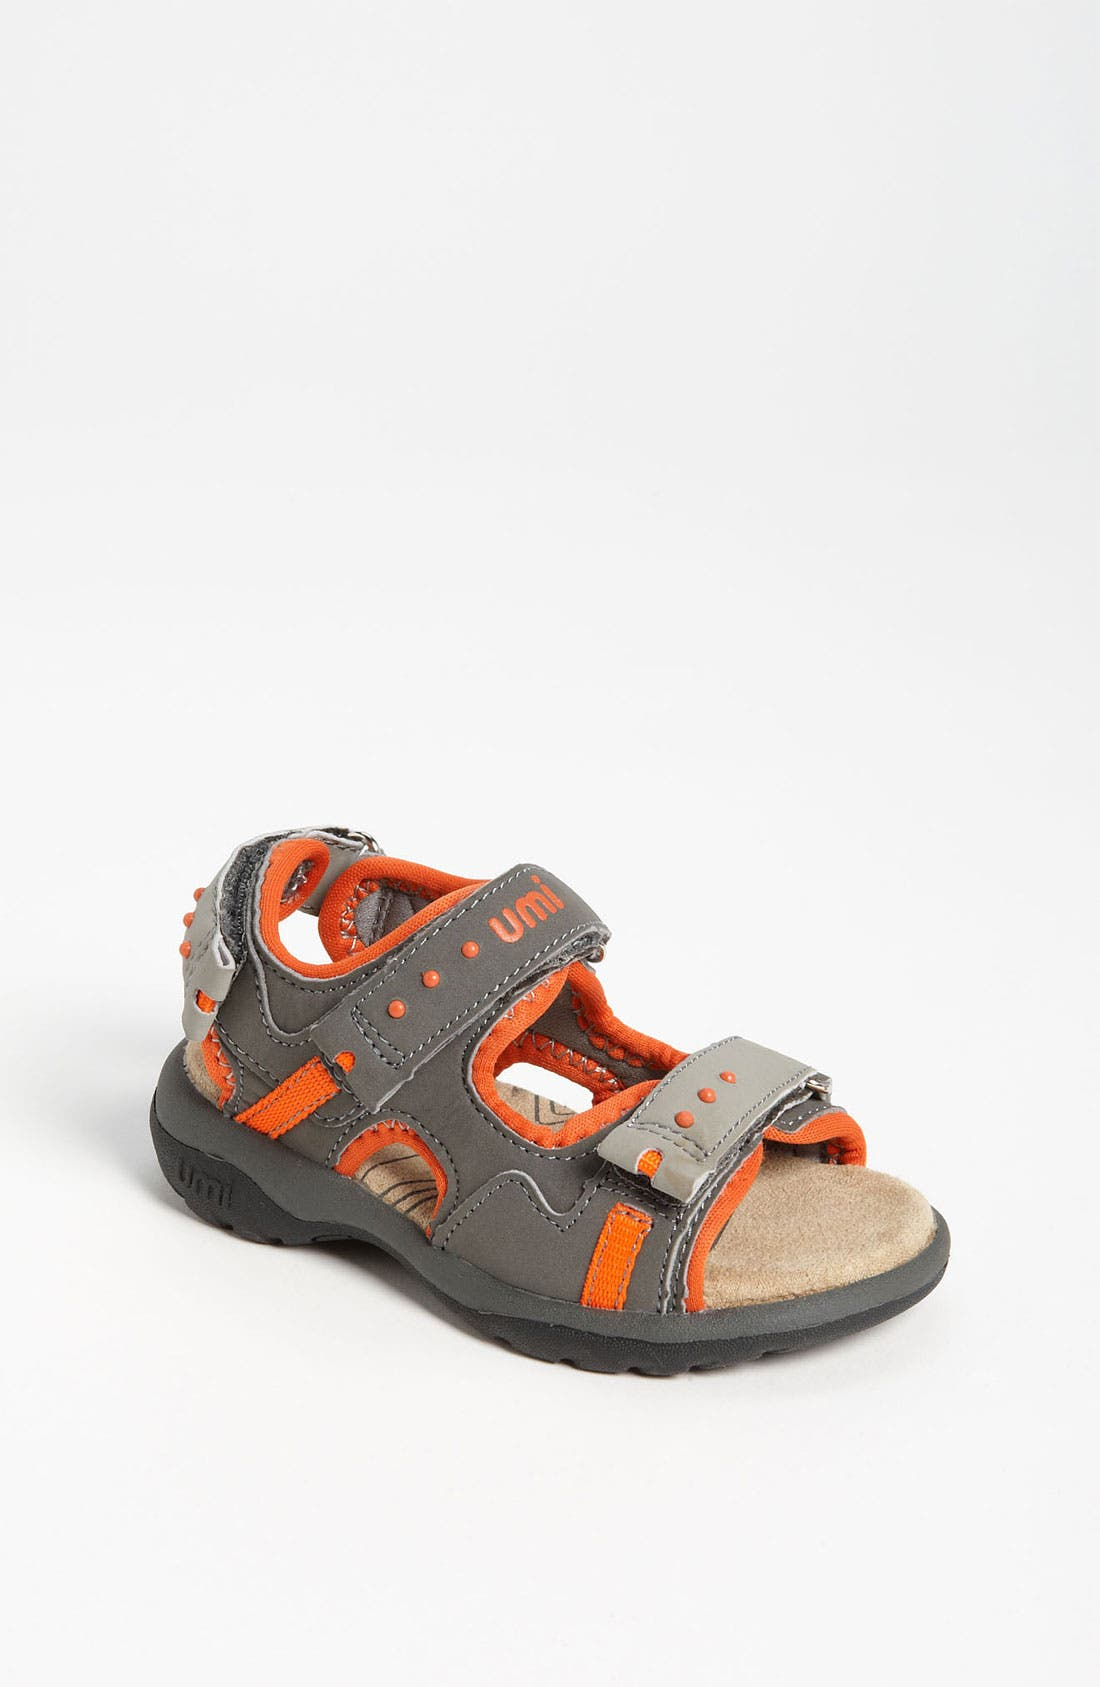 Alternate Image 1 Selected - Umi 'Laren' Sandal (Walker, Toddler, Little Kid & Big Kid)